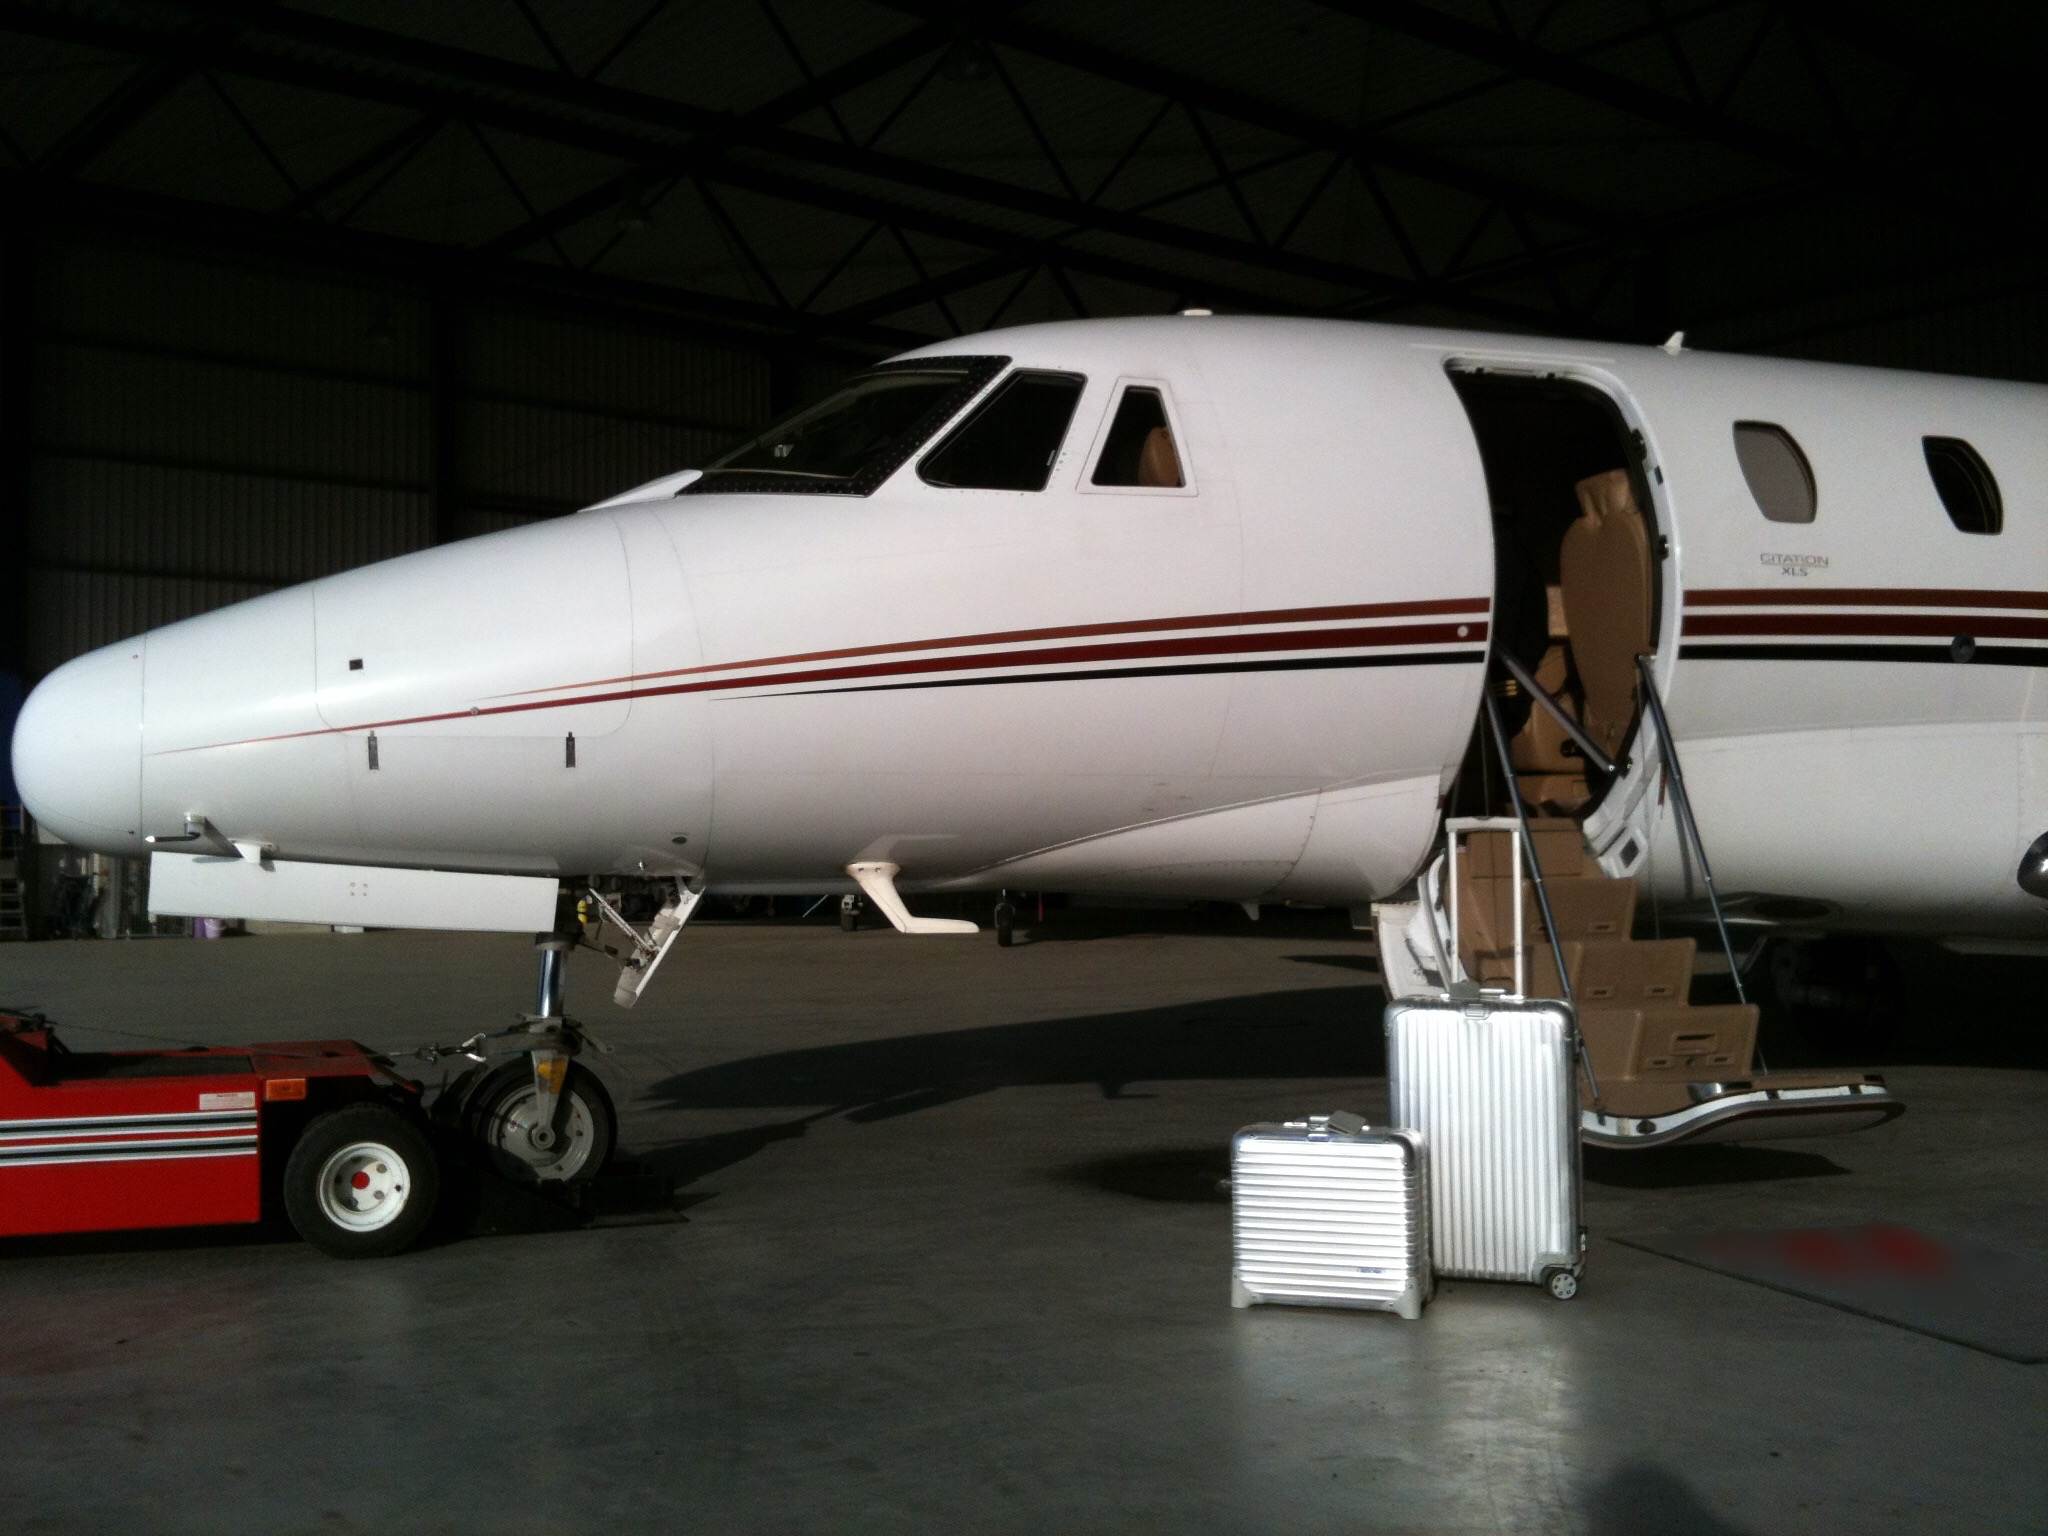 rimowa, suitcase, private jet, citation xls, hangar, flyprivate, pilot